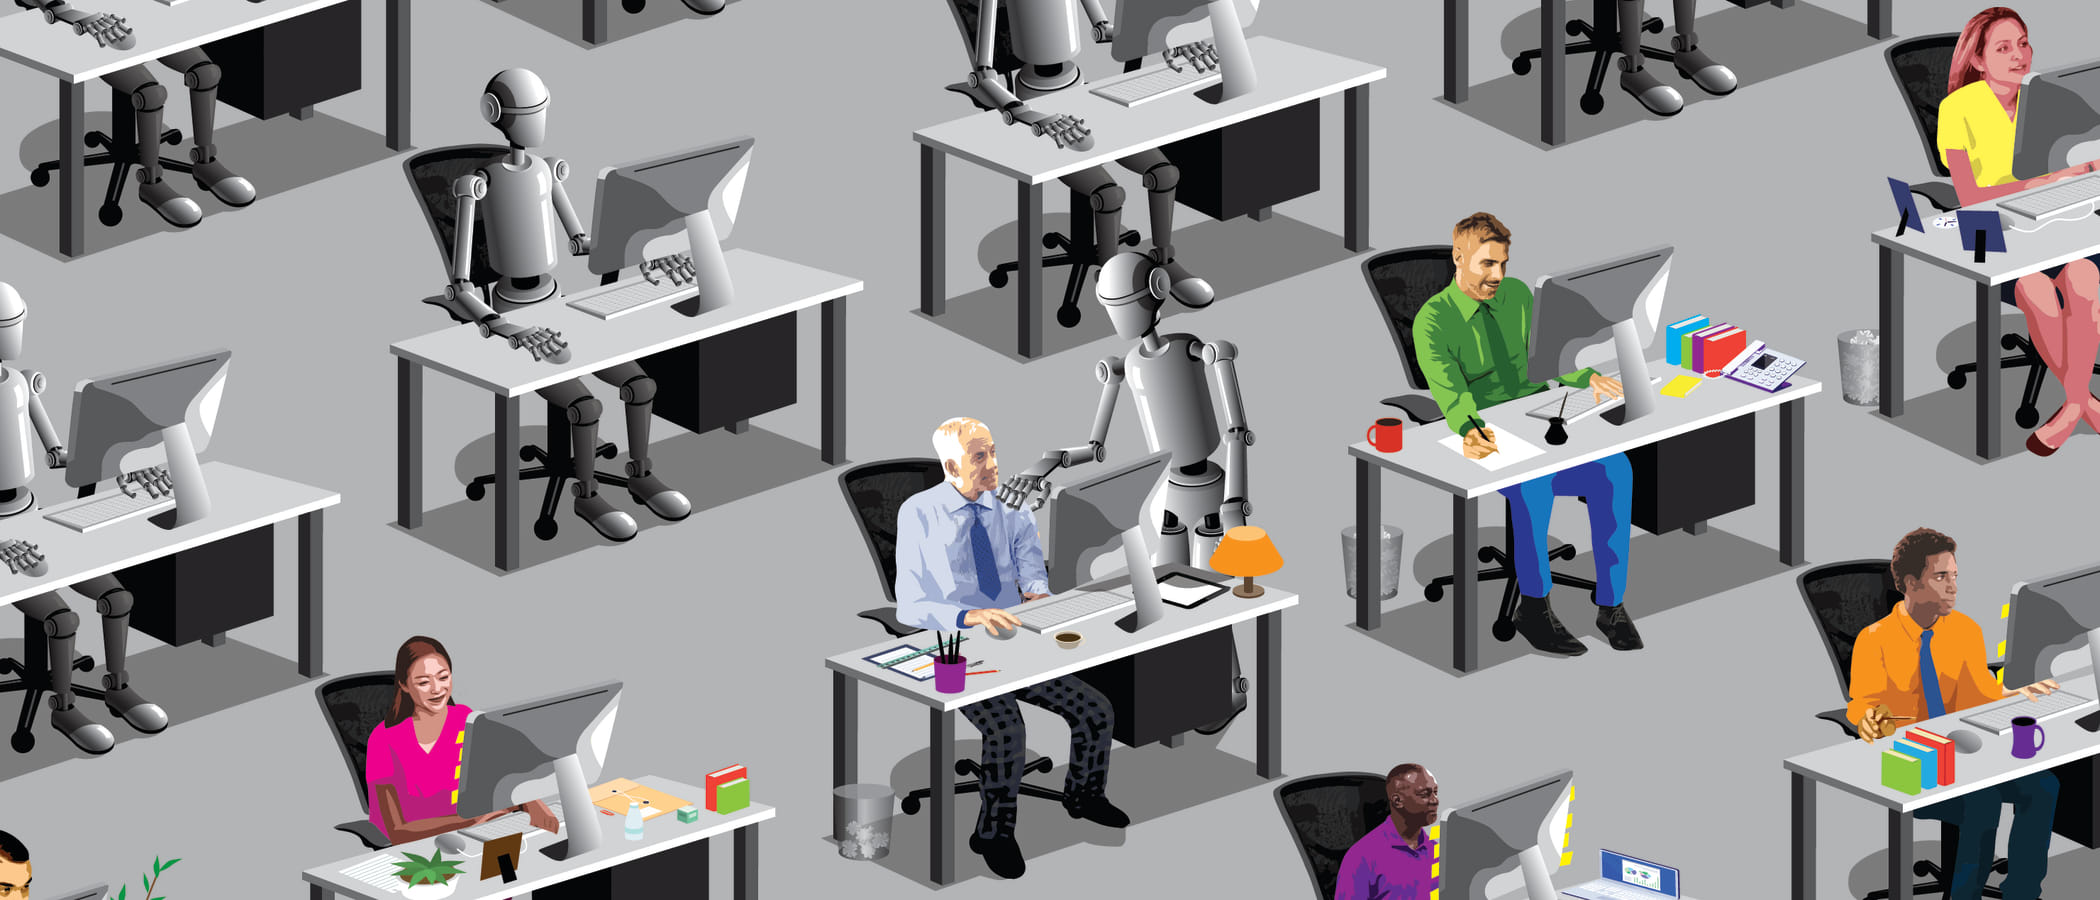 HR Needs to Stay Ahead of Automation